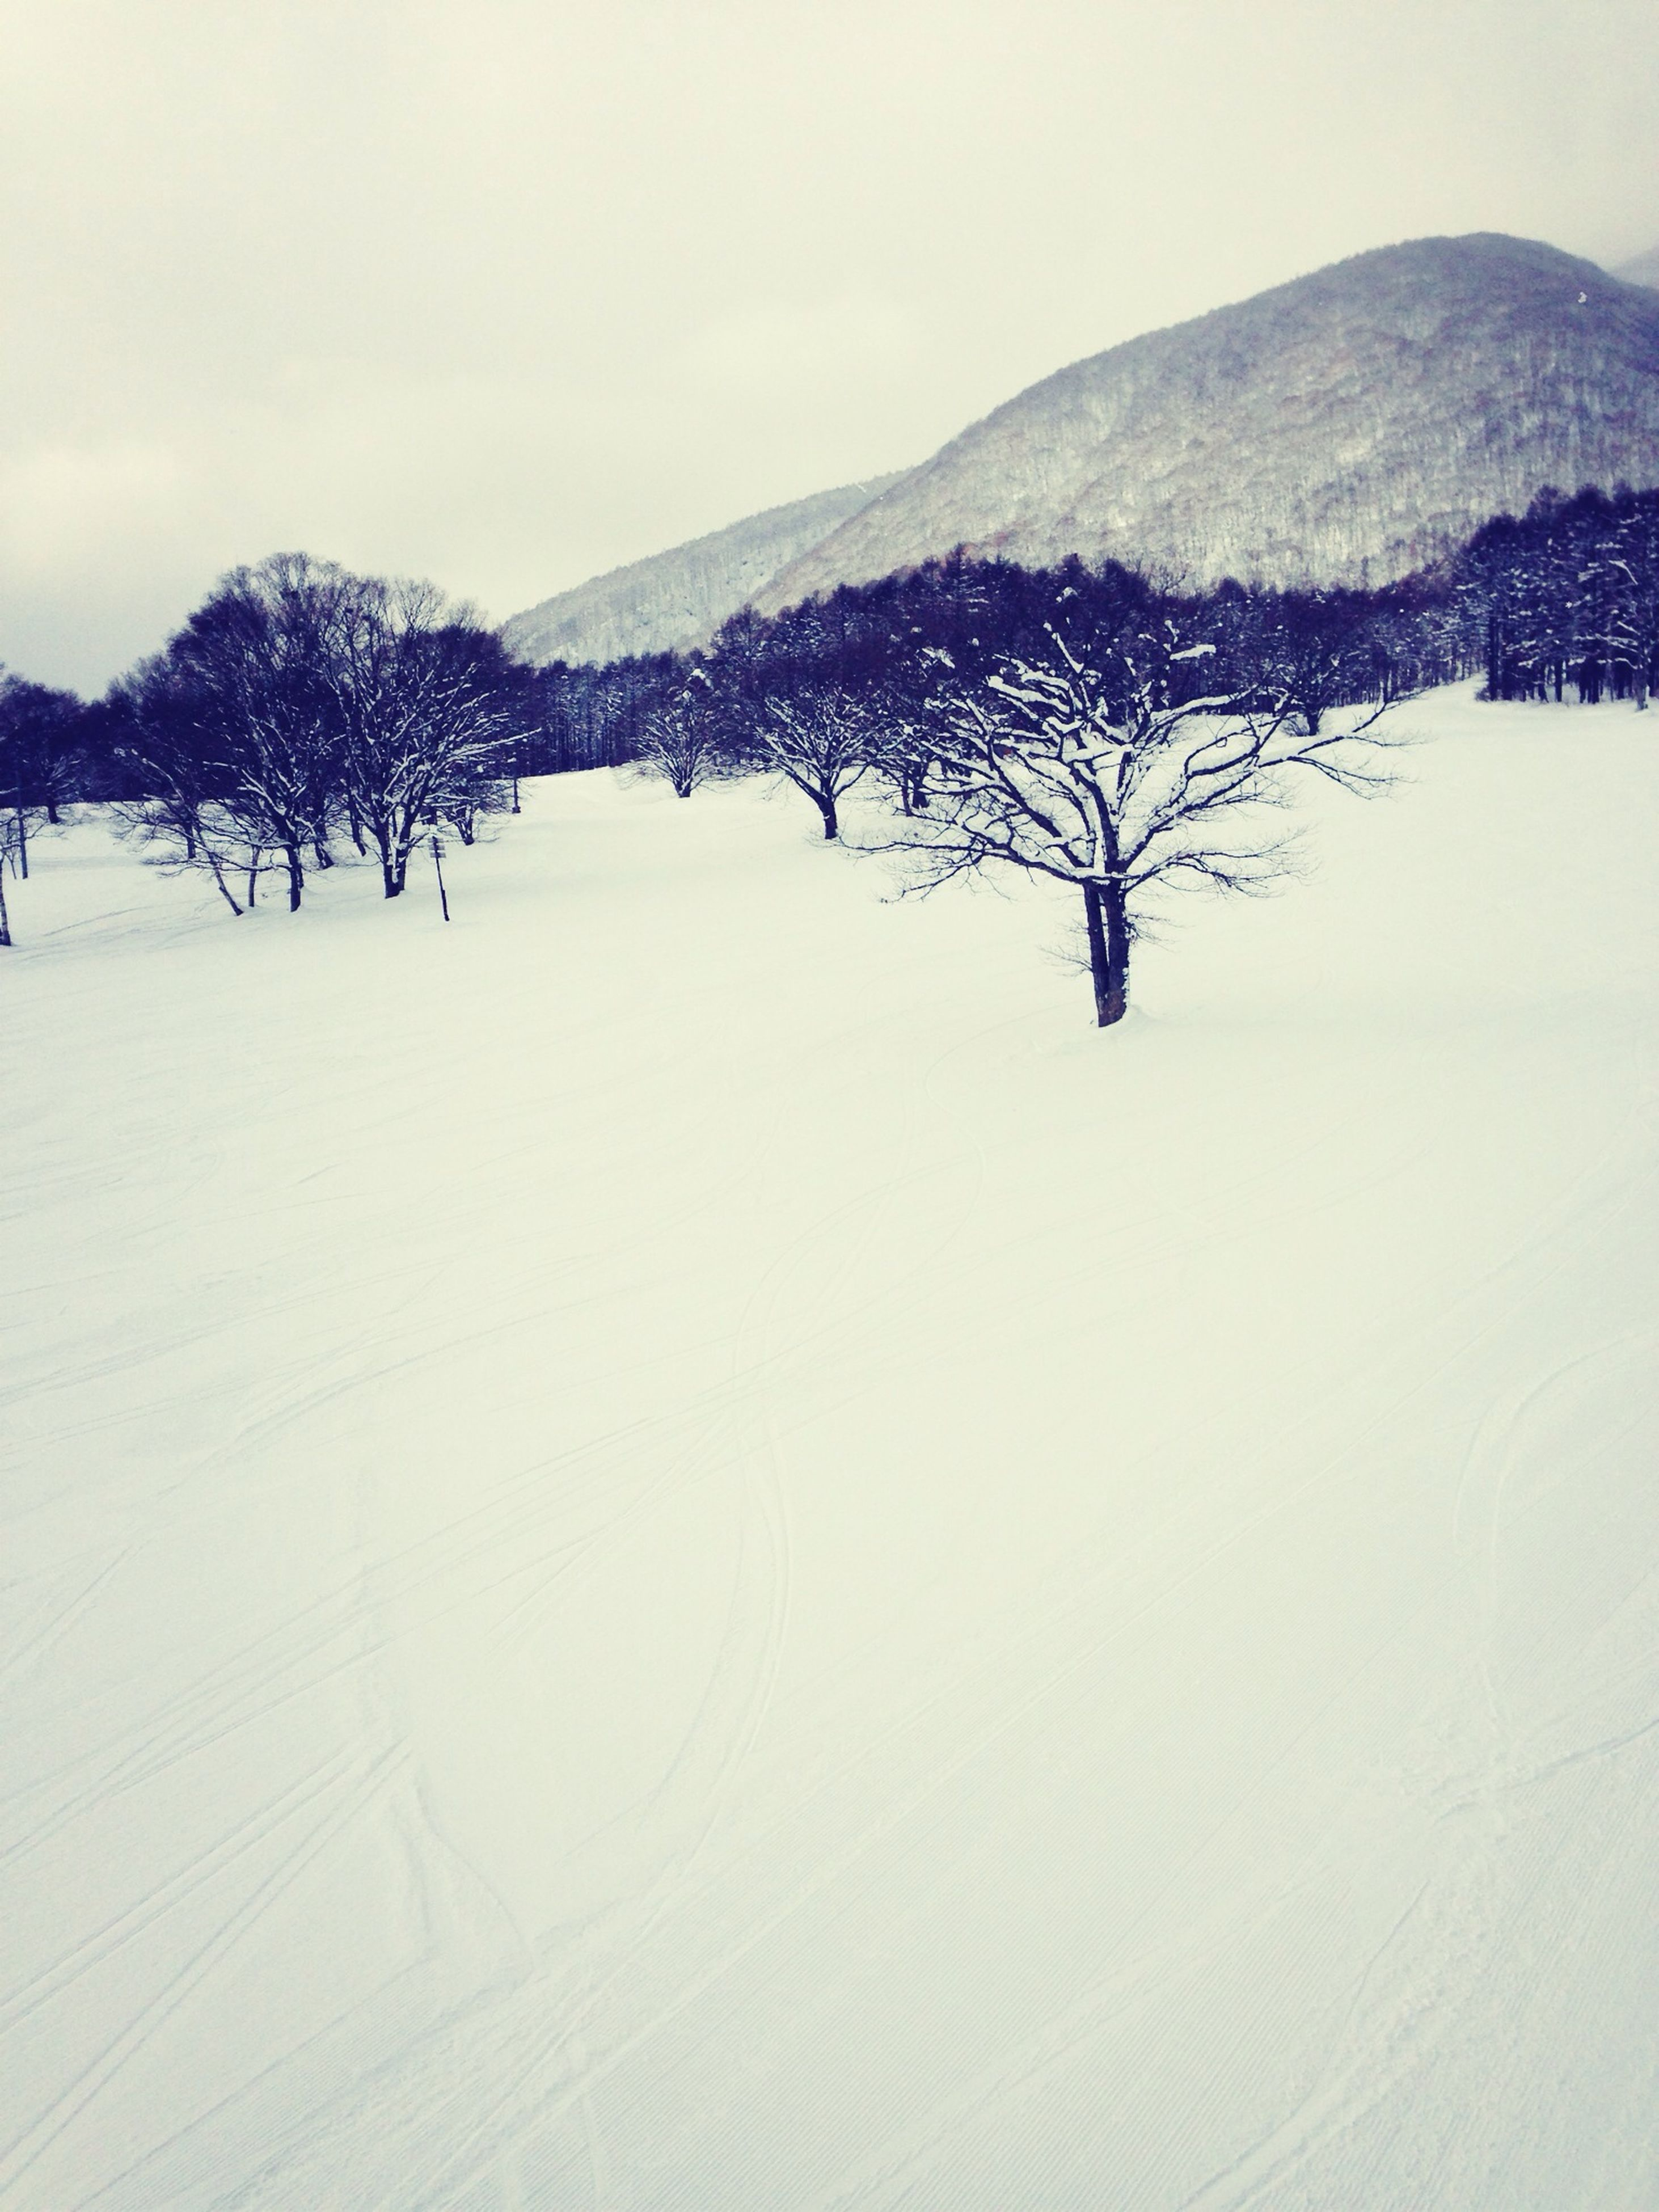 snow, winter, cold temperature, season, weather, covering, tranquil scene, tranquility, landscape, scenics, mountain, beauty in nature, nature, tree, bare tree, clear sky, white color, snow covered, mountain range, covered